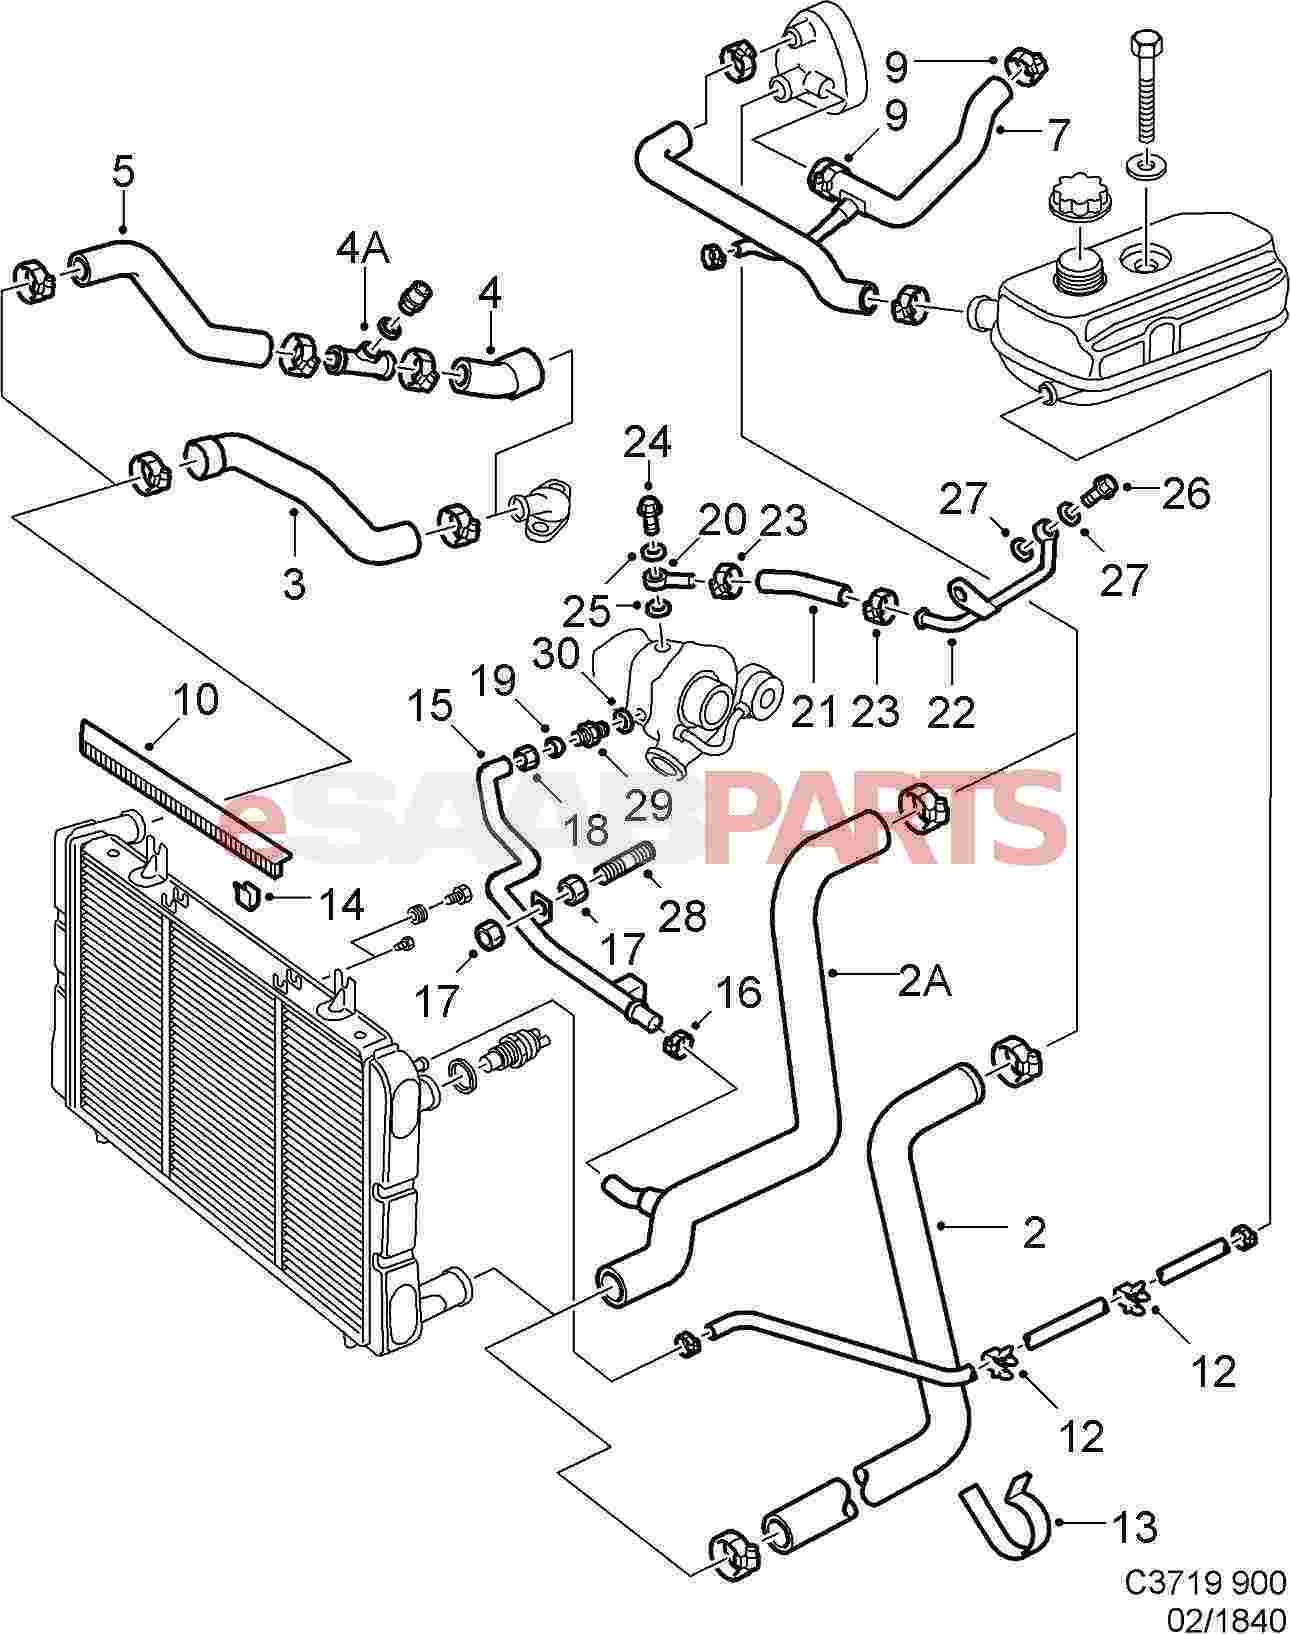 hight resolution of 7970080 saab hose clamp genuine saab parts from saab 97x parts diagram saab 9000 parts diagram